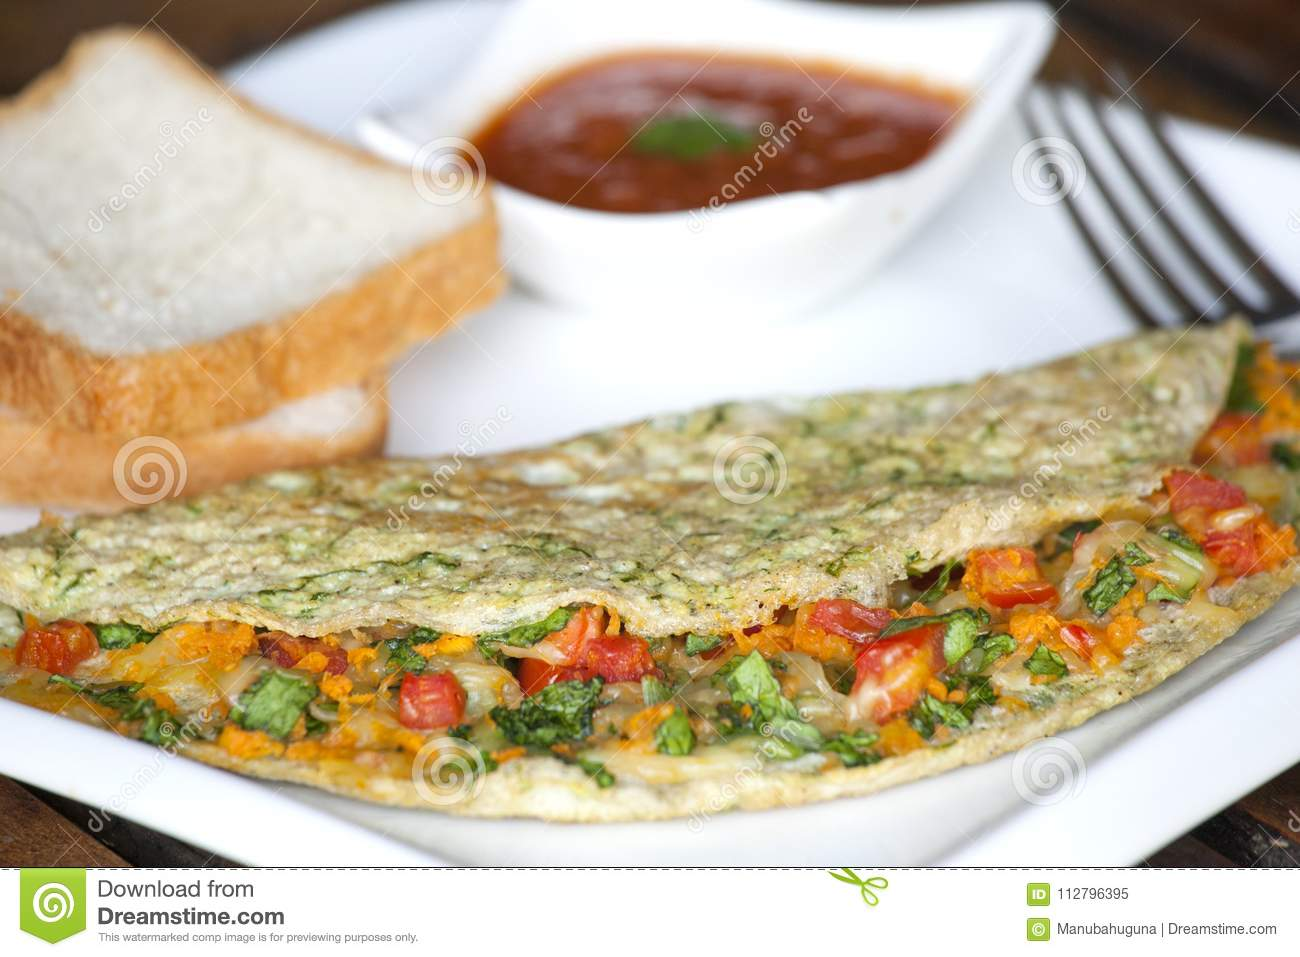 Spinach Egg White Cheese Omelette Stock Image Image Of Spinach